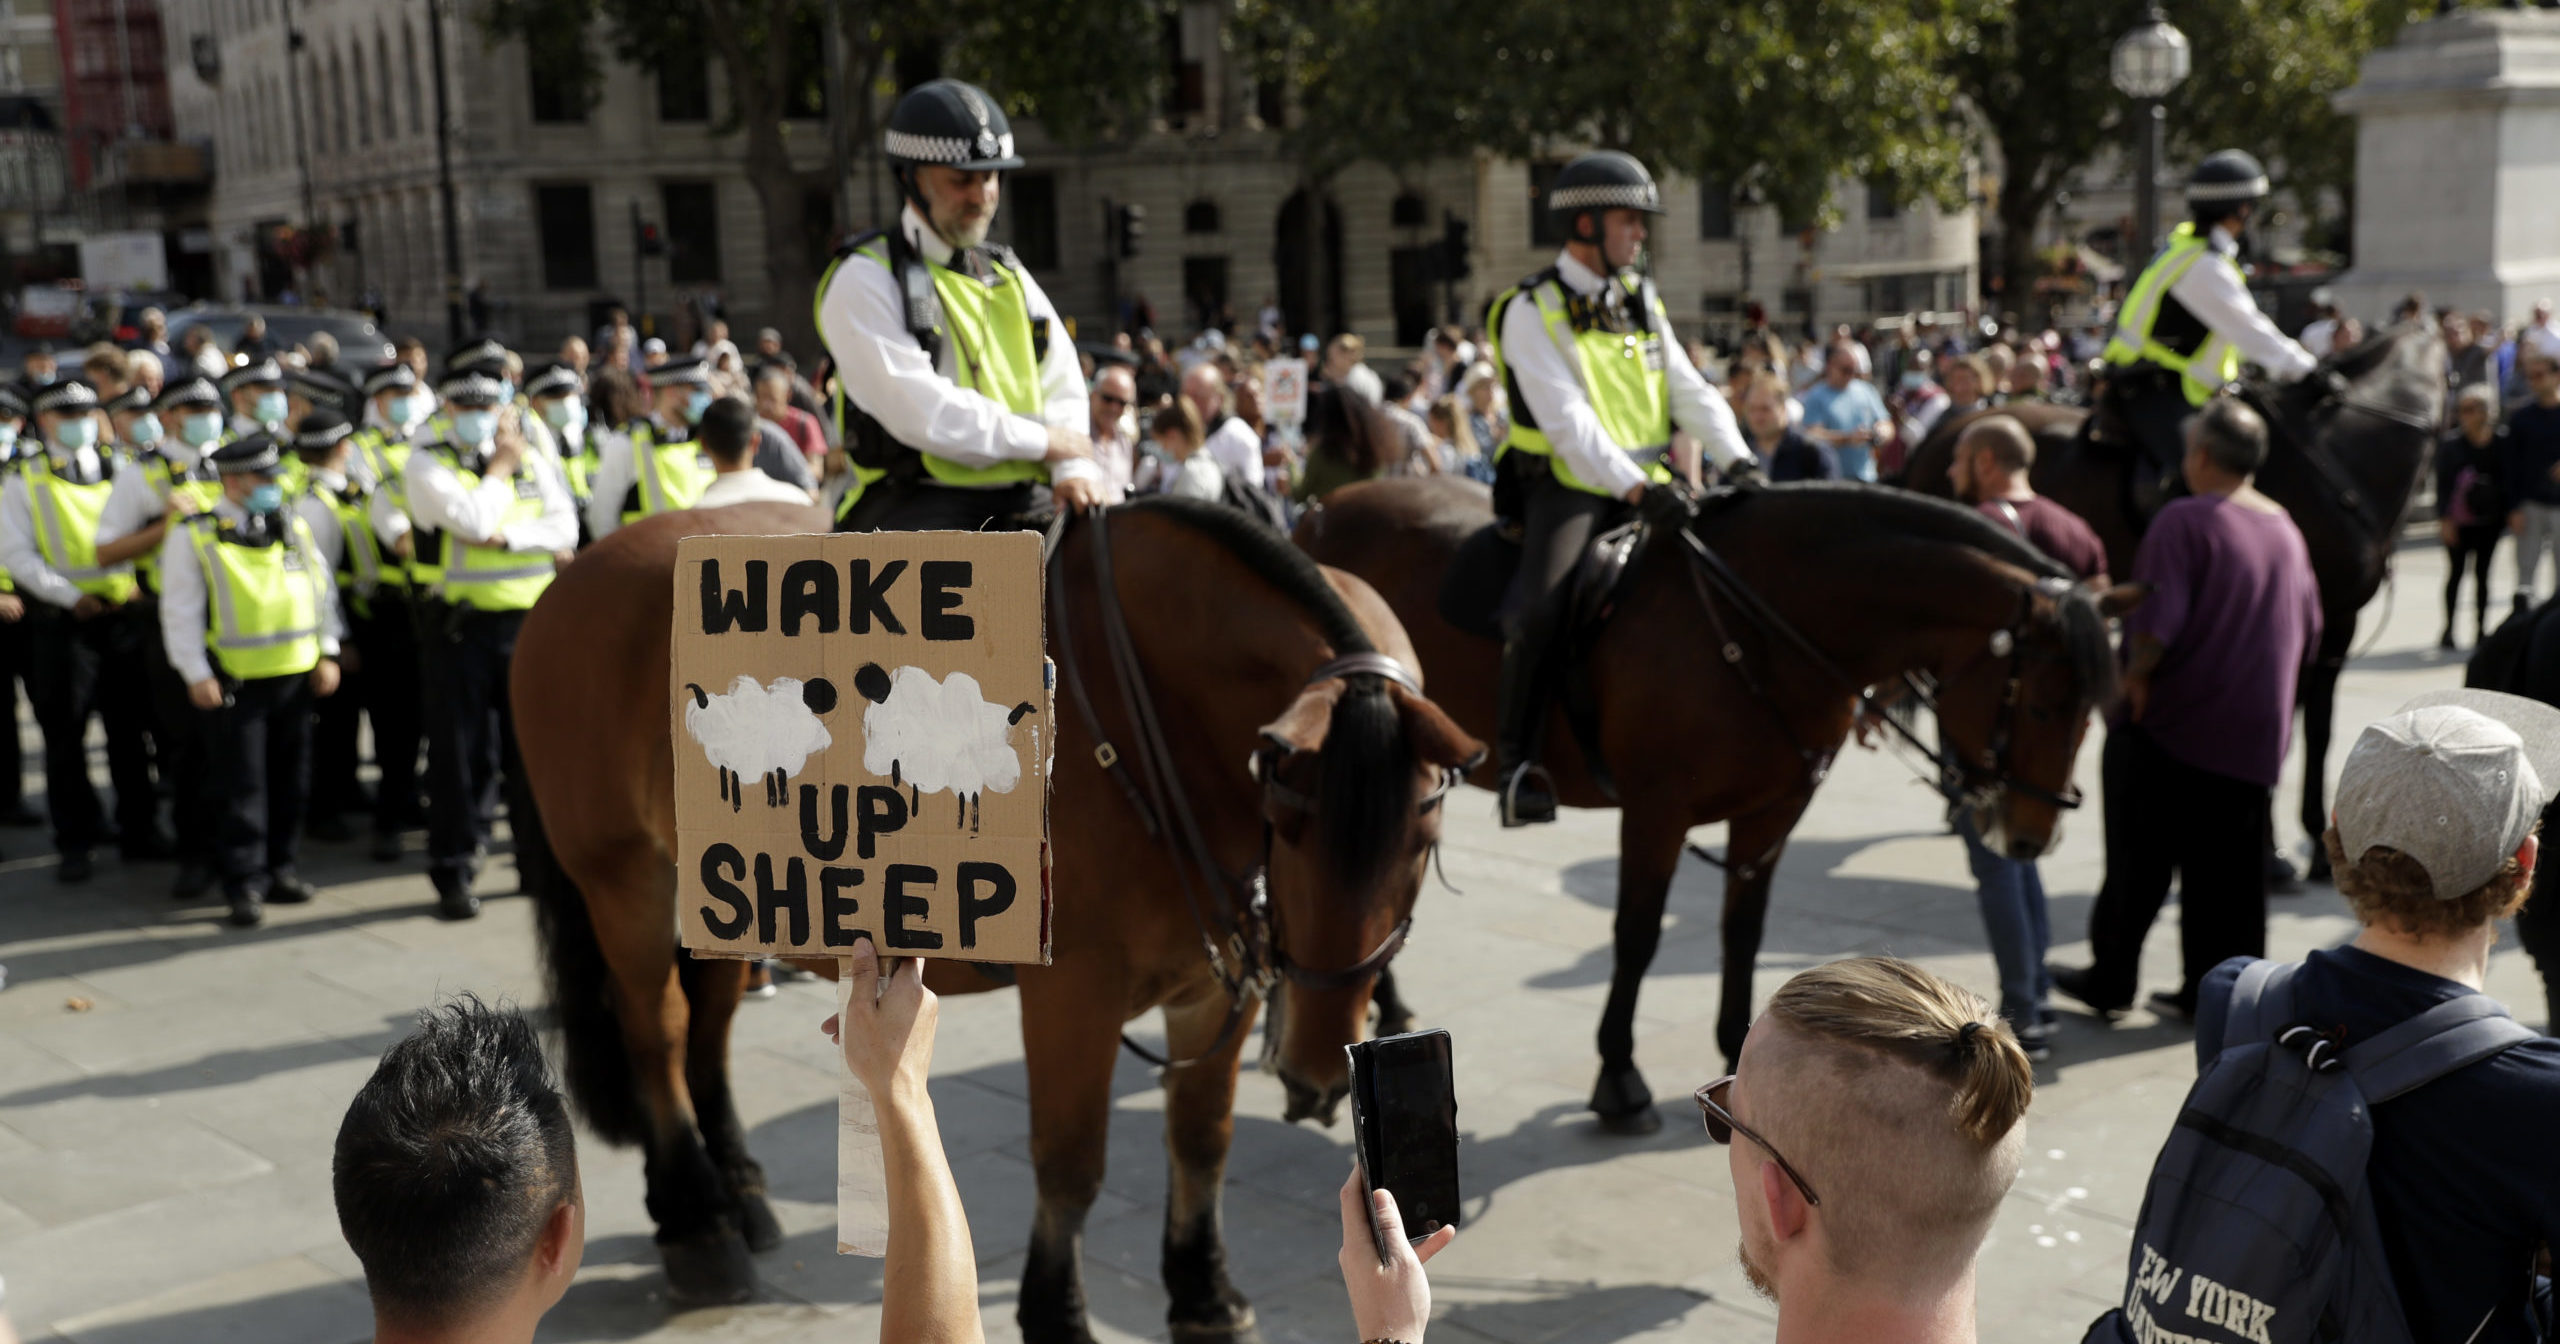 Demonstrators took to the streets of London, Tel Aviv and other cities on Sept. 19, 2020, to protest coronavirus restrictions, decrying the government mandates that have upended daily life around the globe.